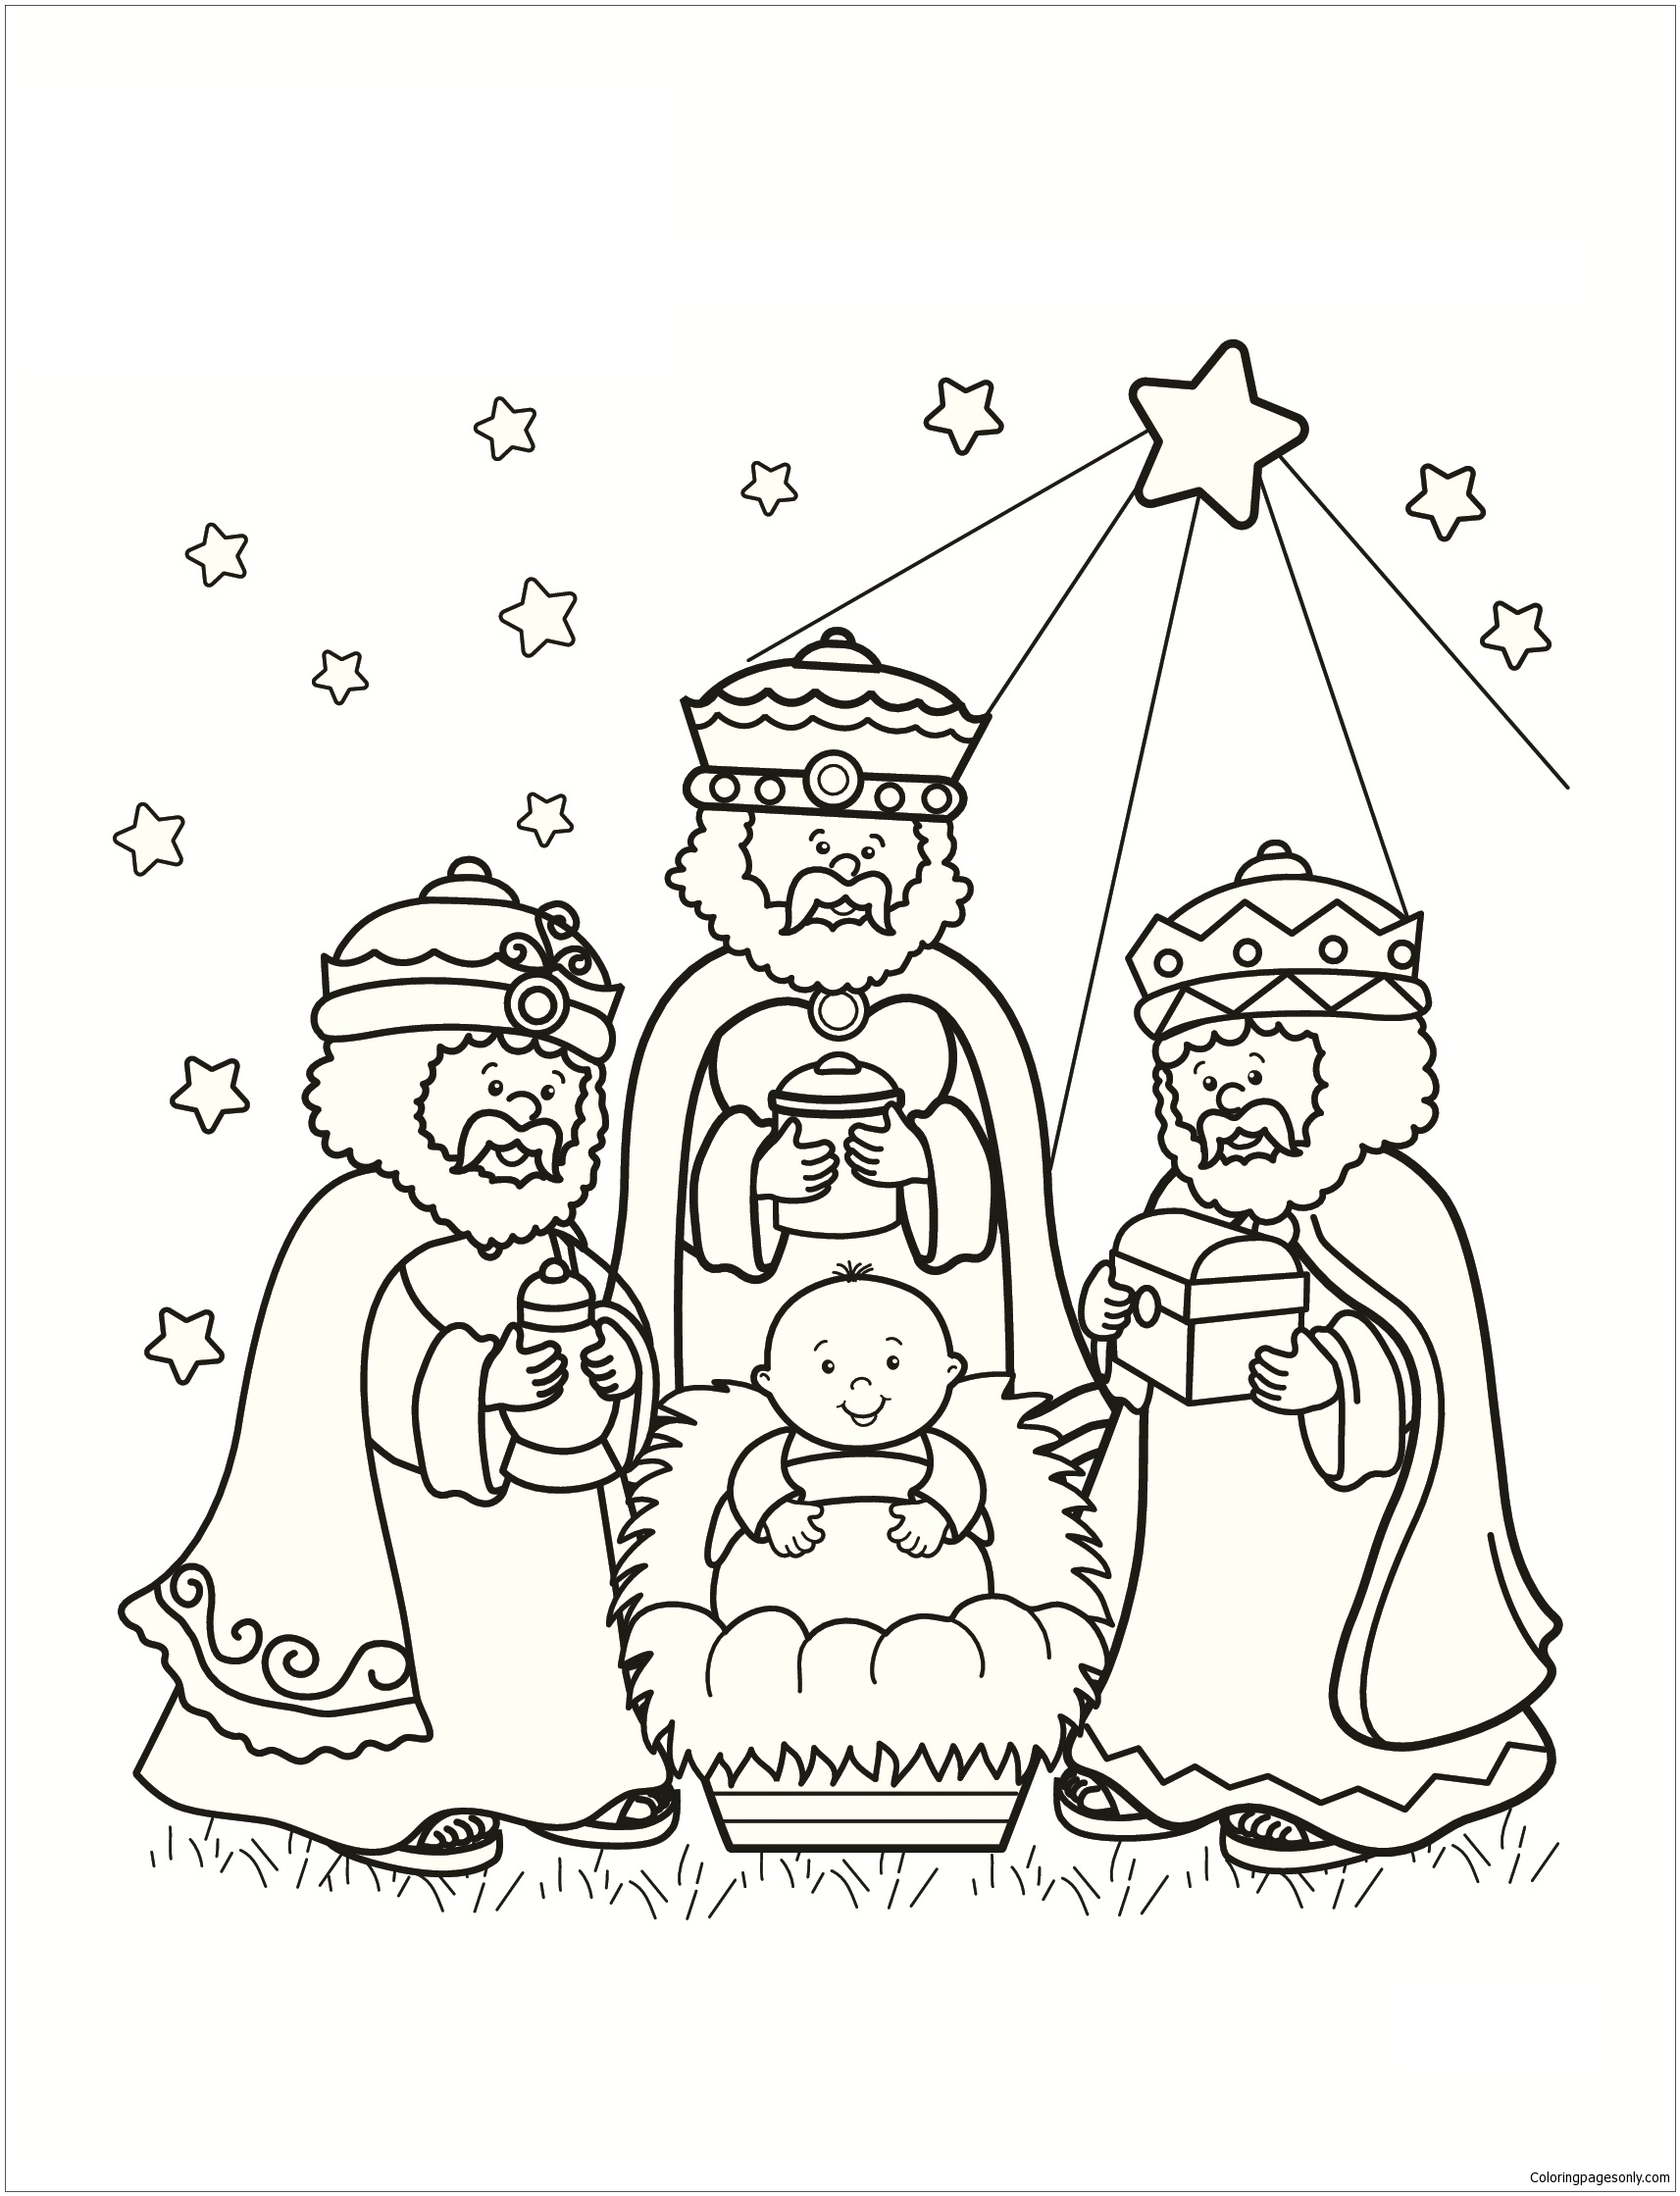 Three Wise Men Worksheet